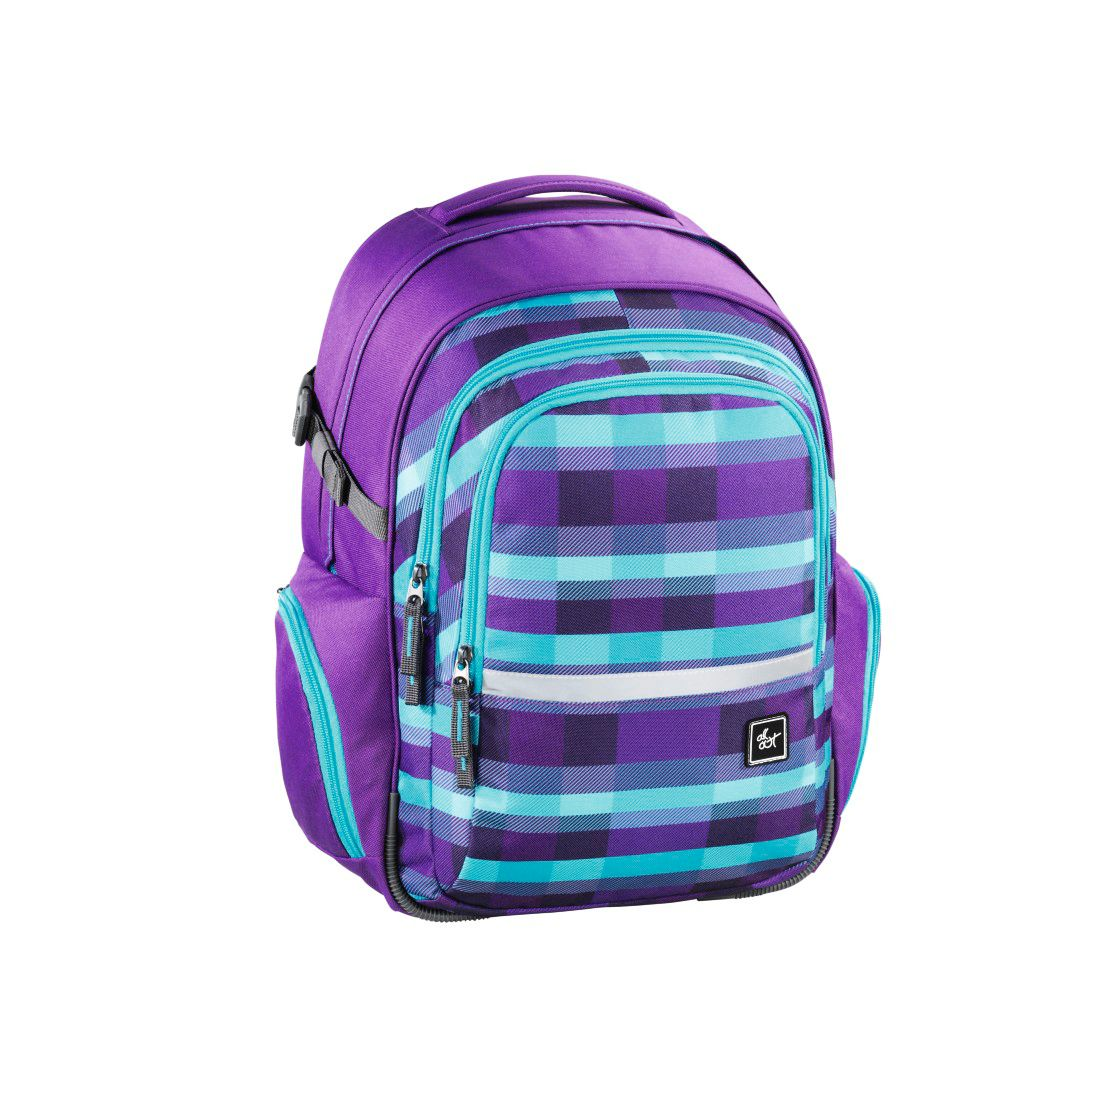 ALL OUT All Out Rucksack Filby, Summer Check Purple